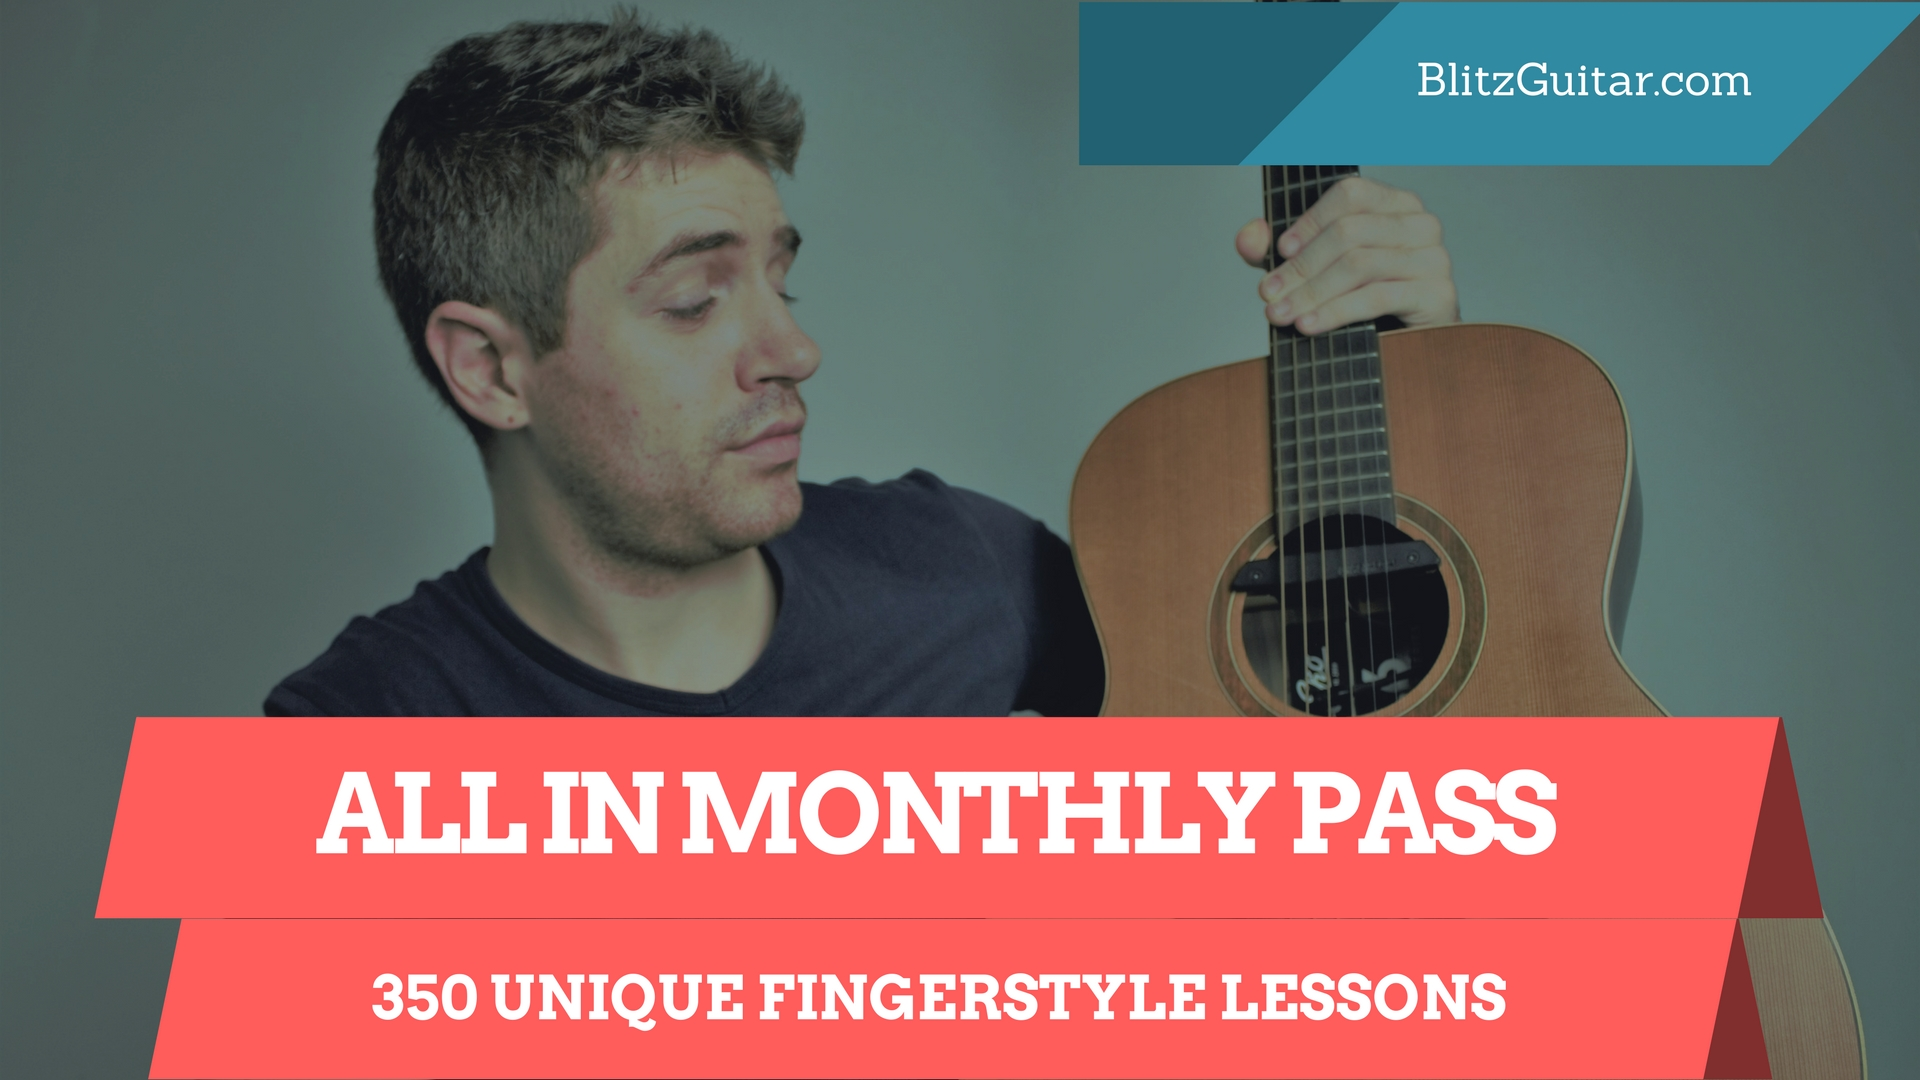 All in Monthly Pass - BlitzGuitar.com